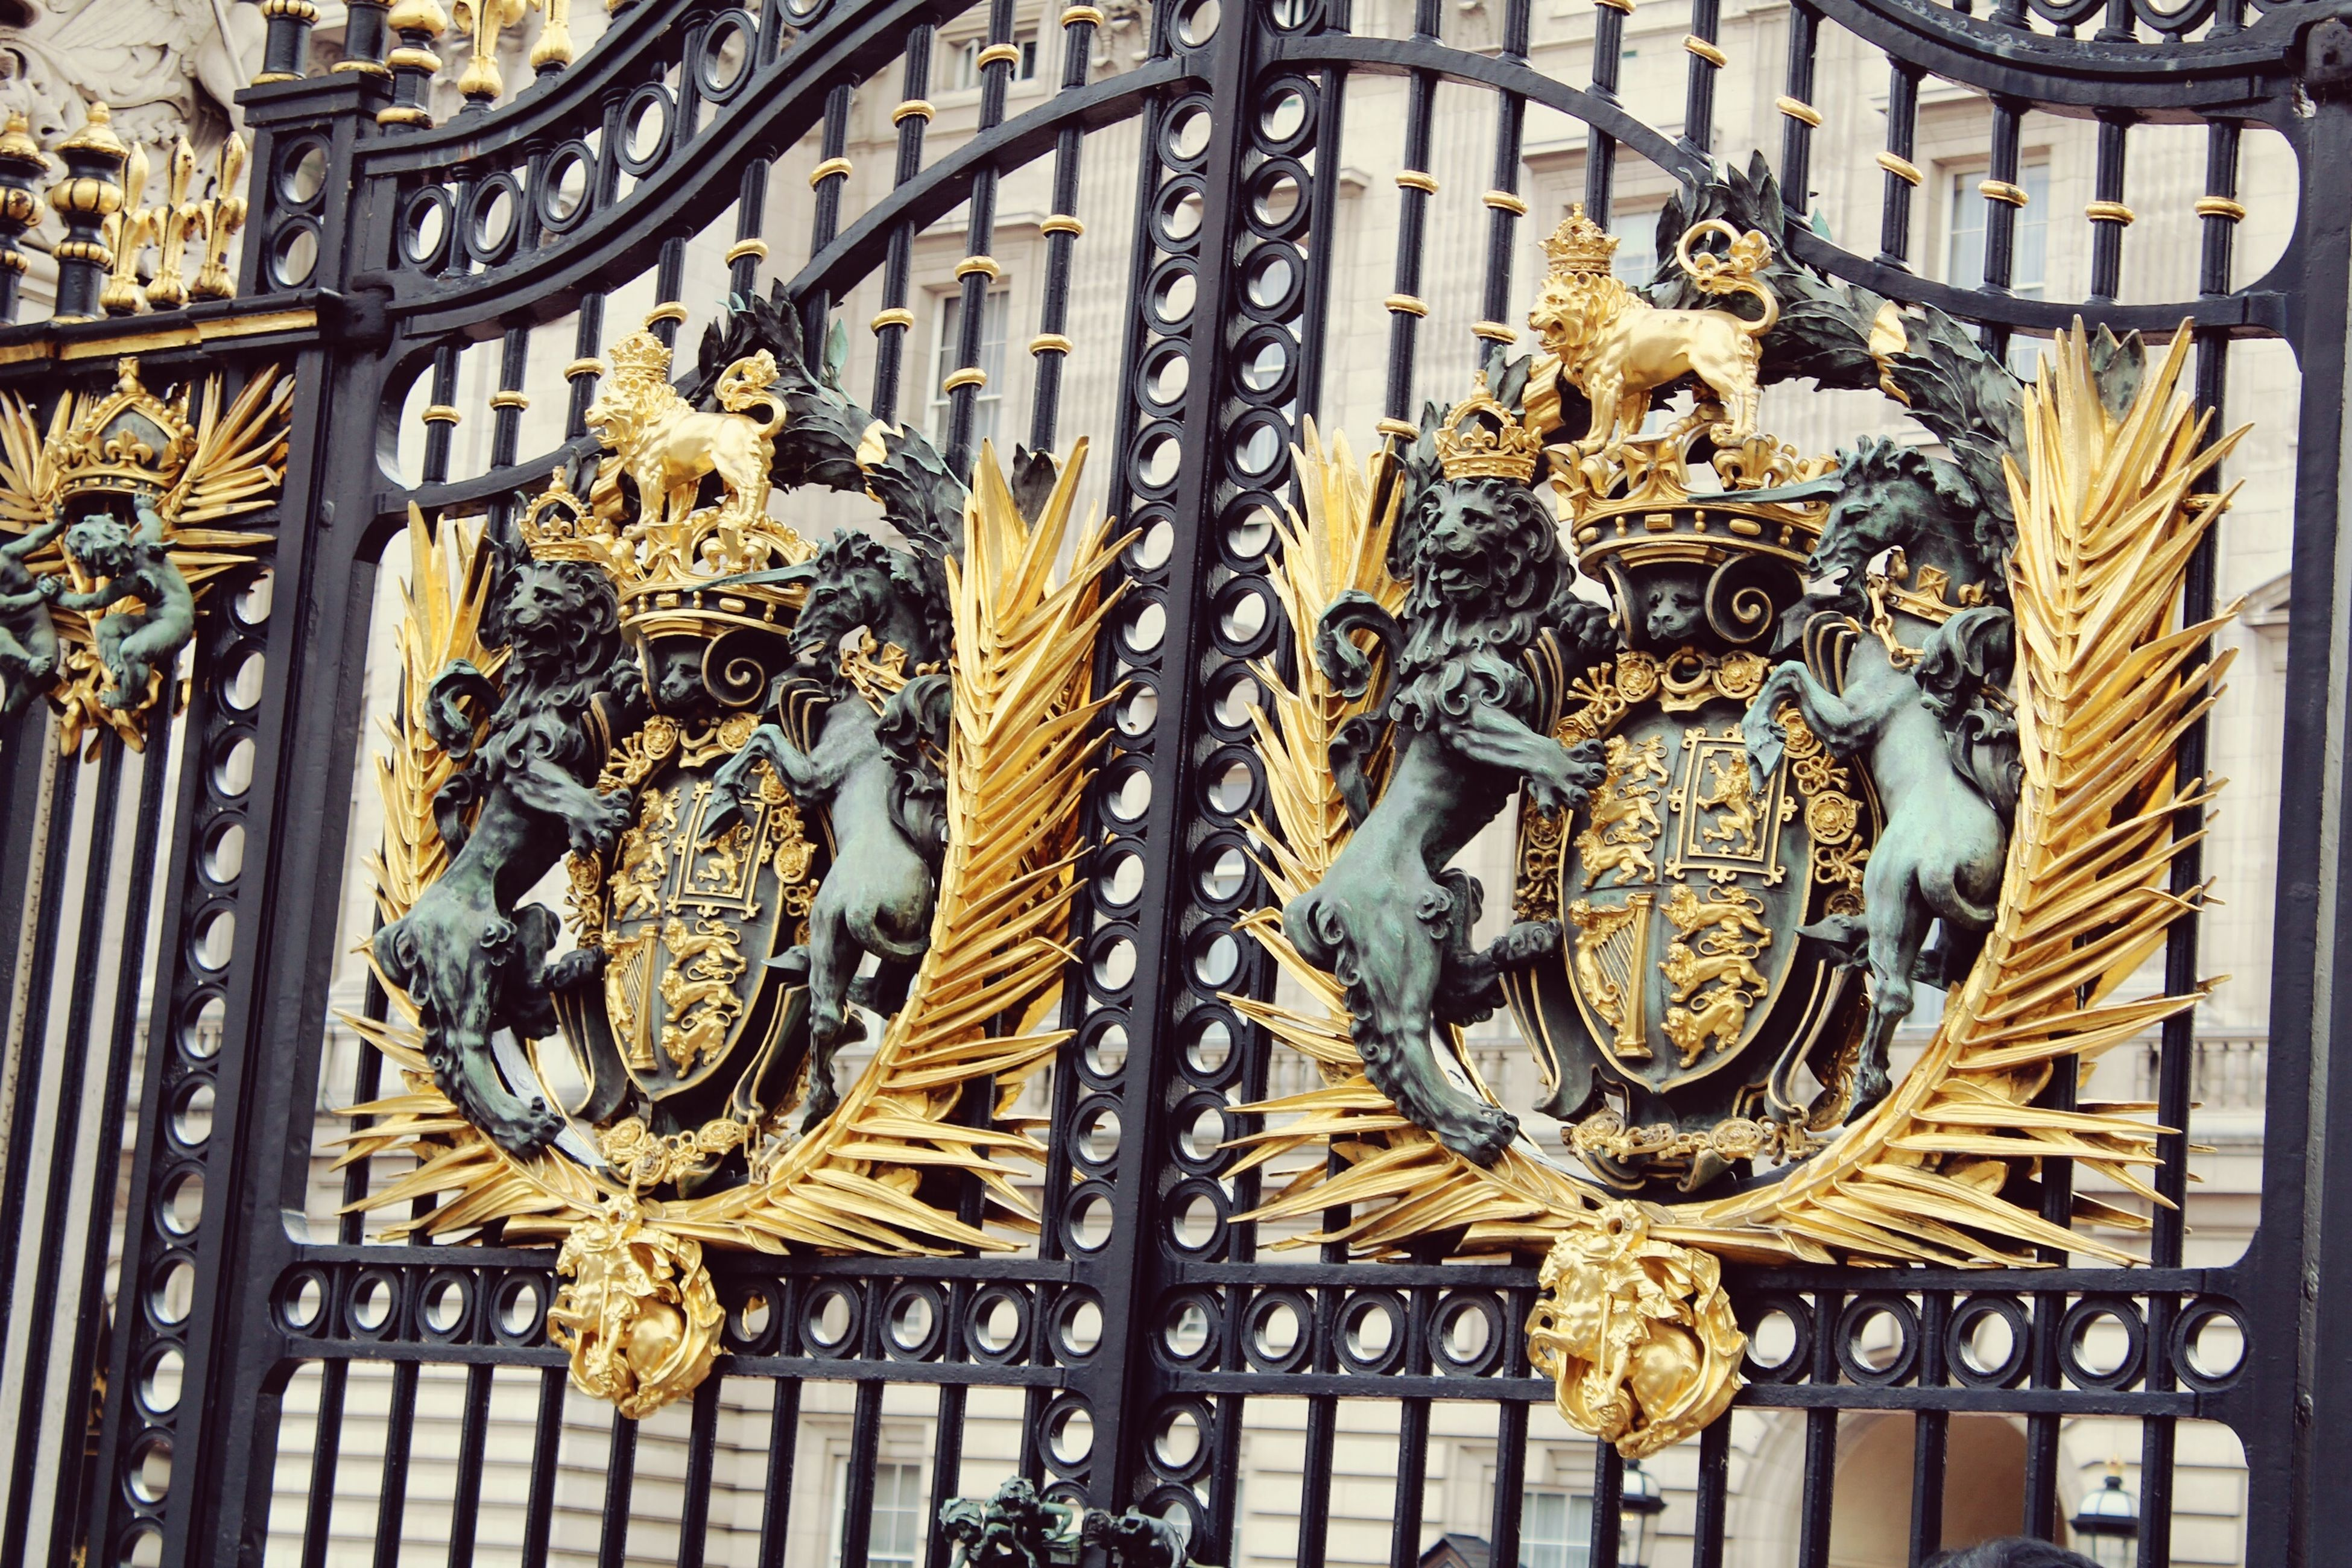 Gate Buckingham Gate Fence Lions Gold Horses London England Buckingham Palace Queens Palace